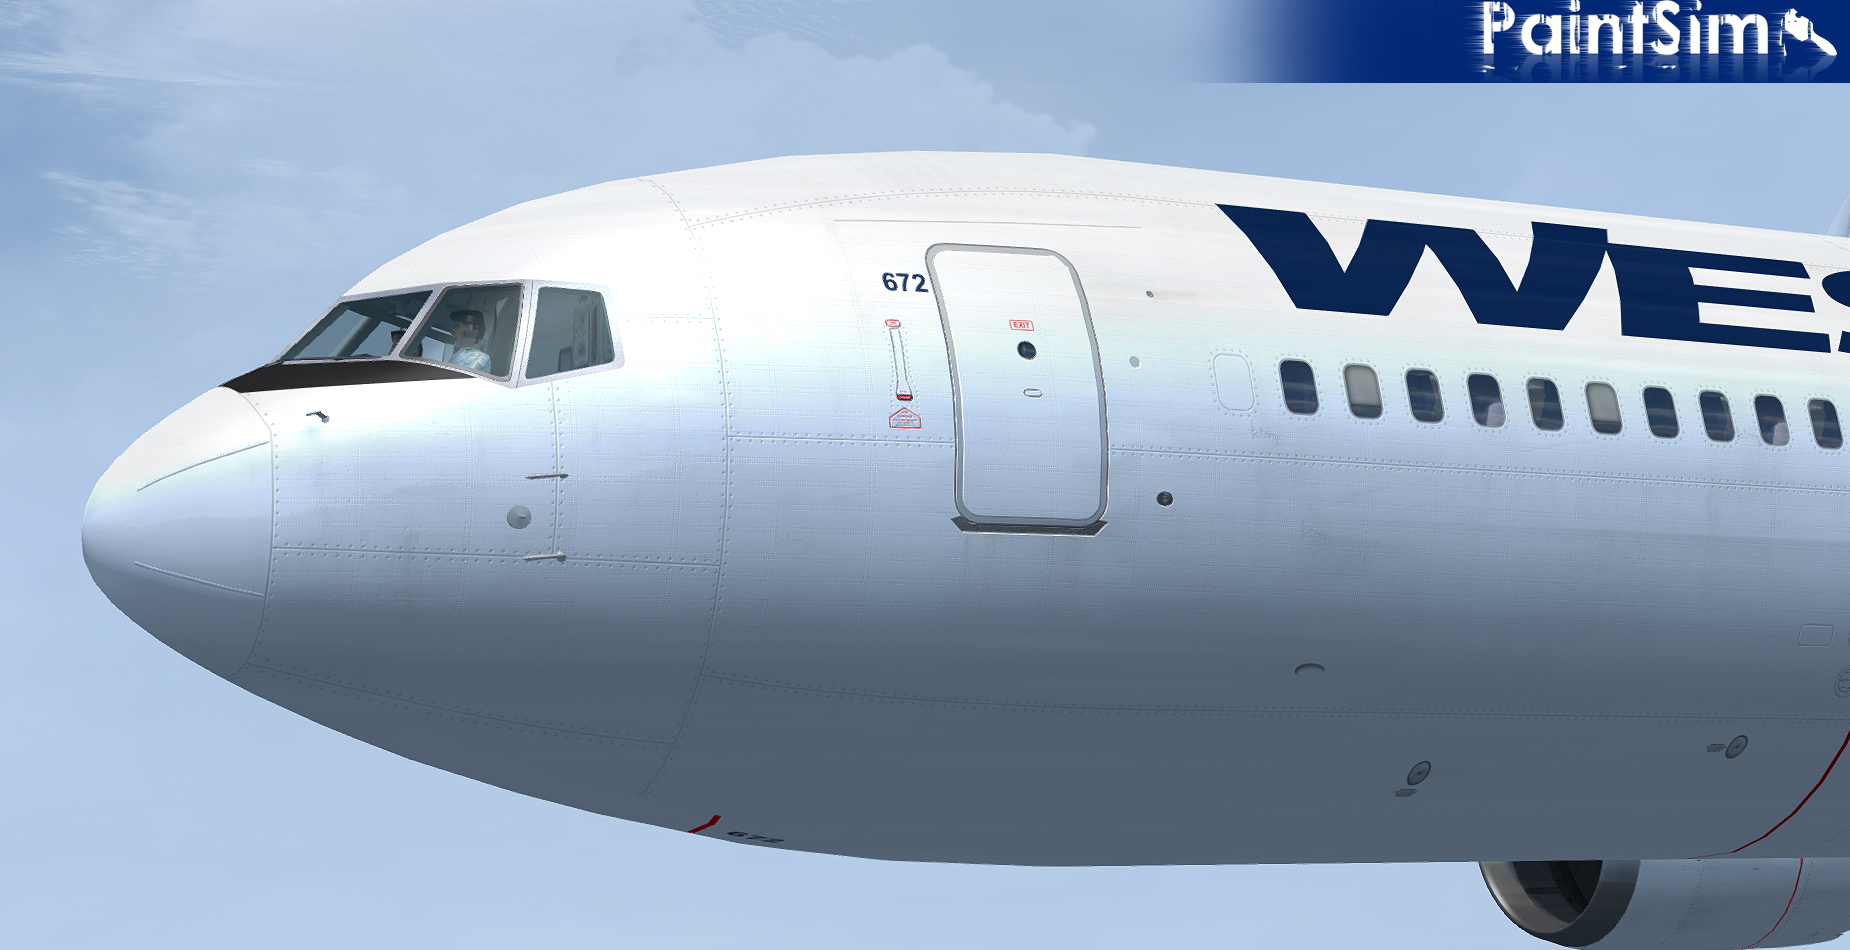 PAINTSIM - UHD TEXTURE PACK 2 FOR LEVEL-D BOEING 767-300ER FSX P3D